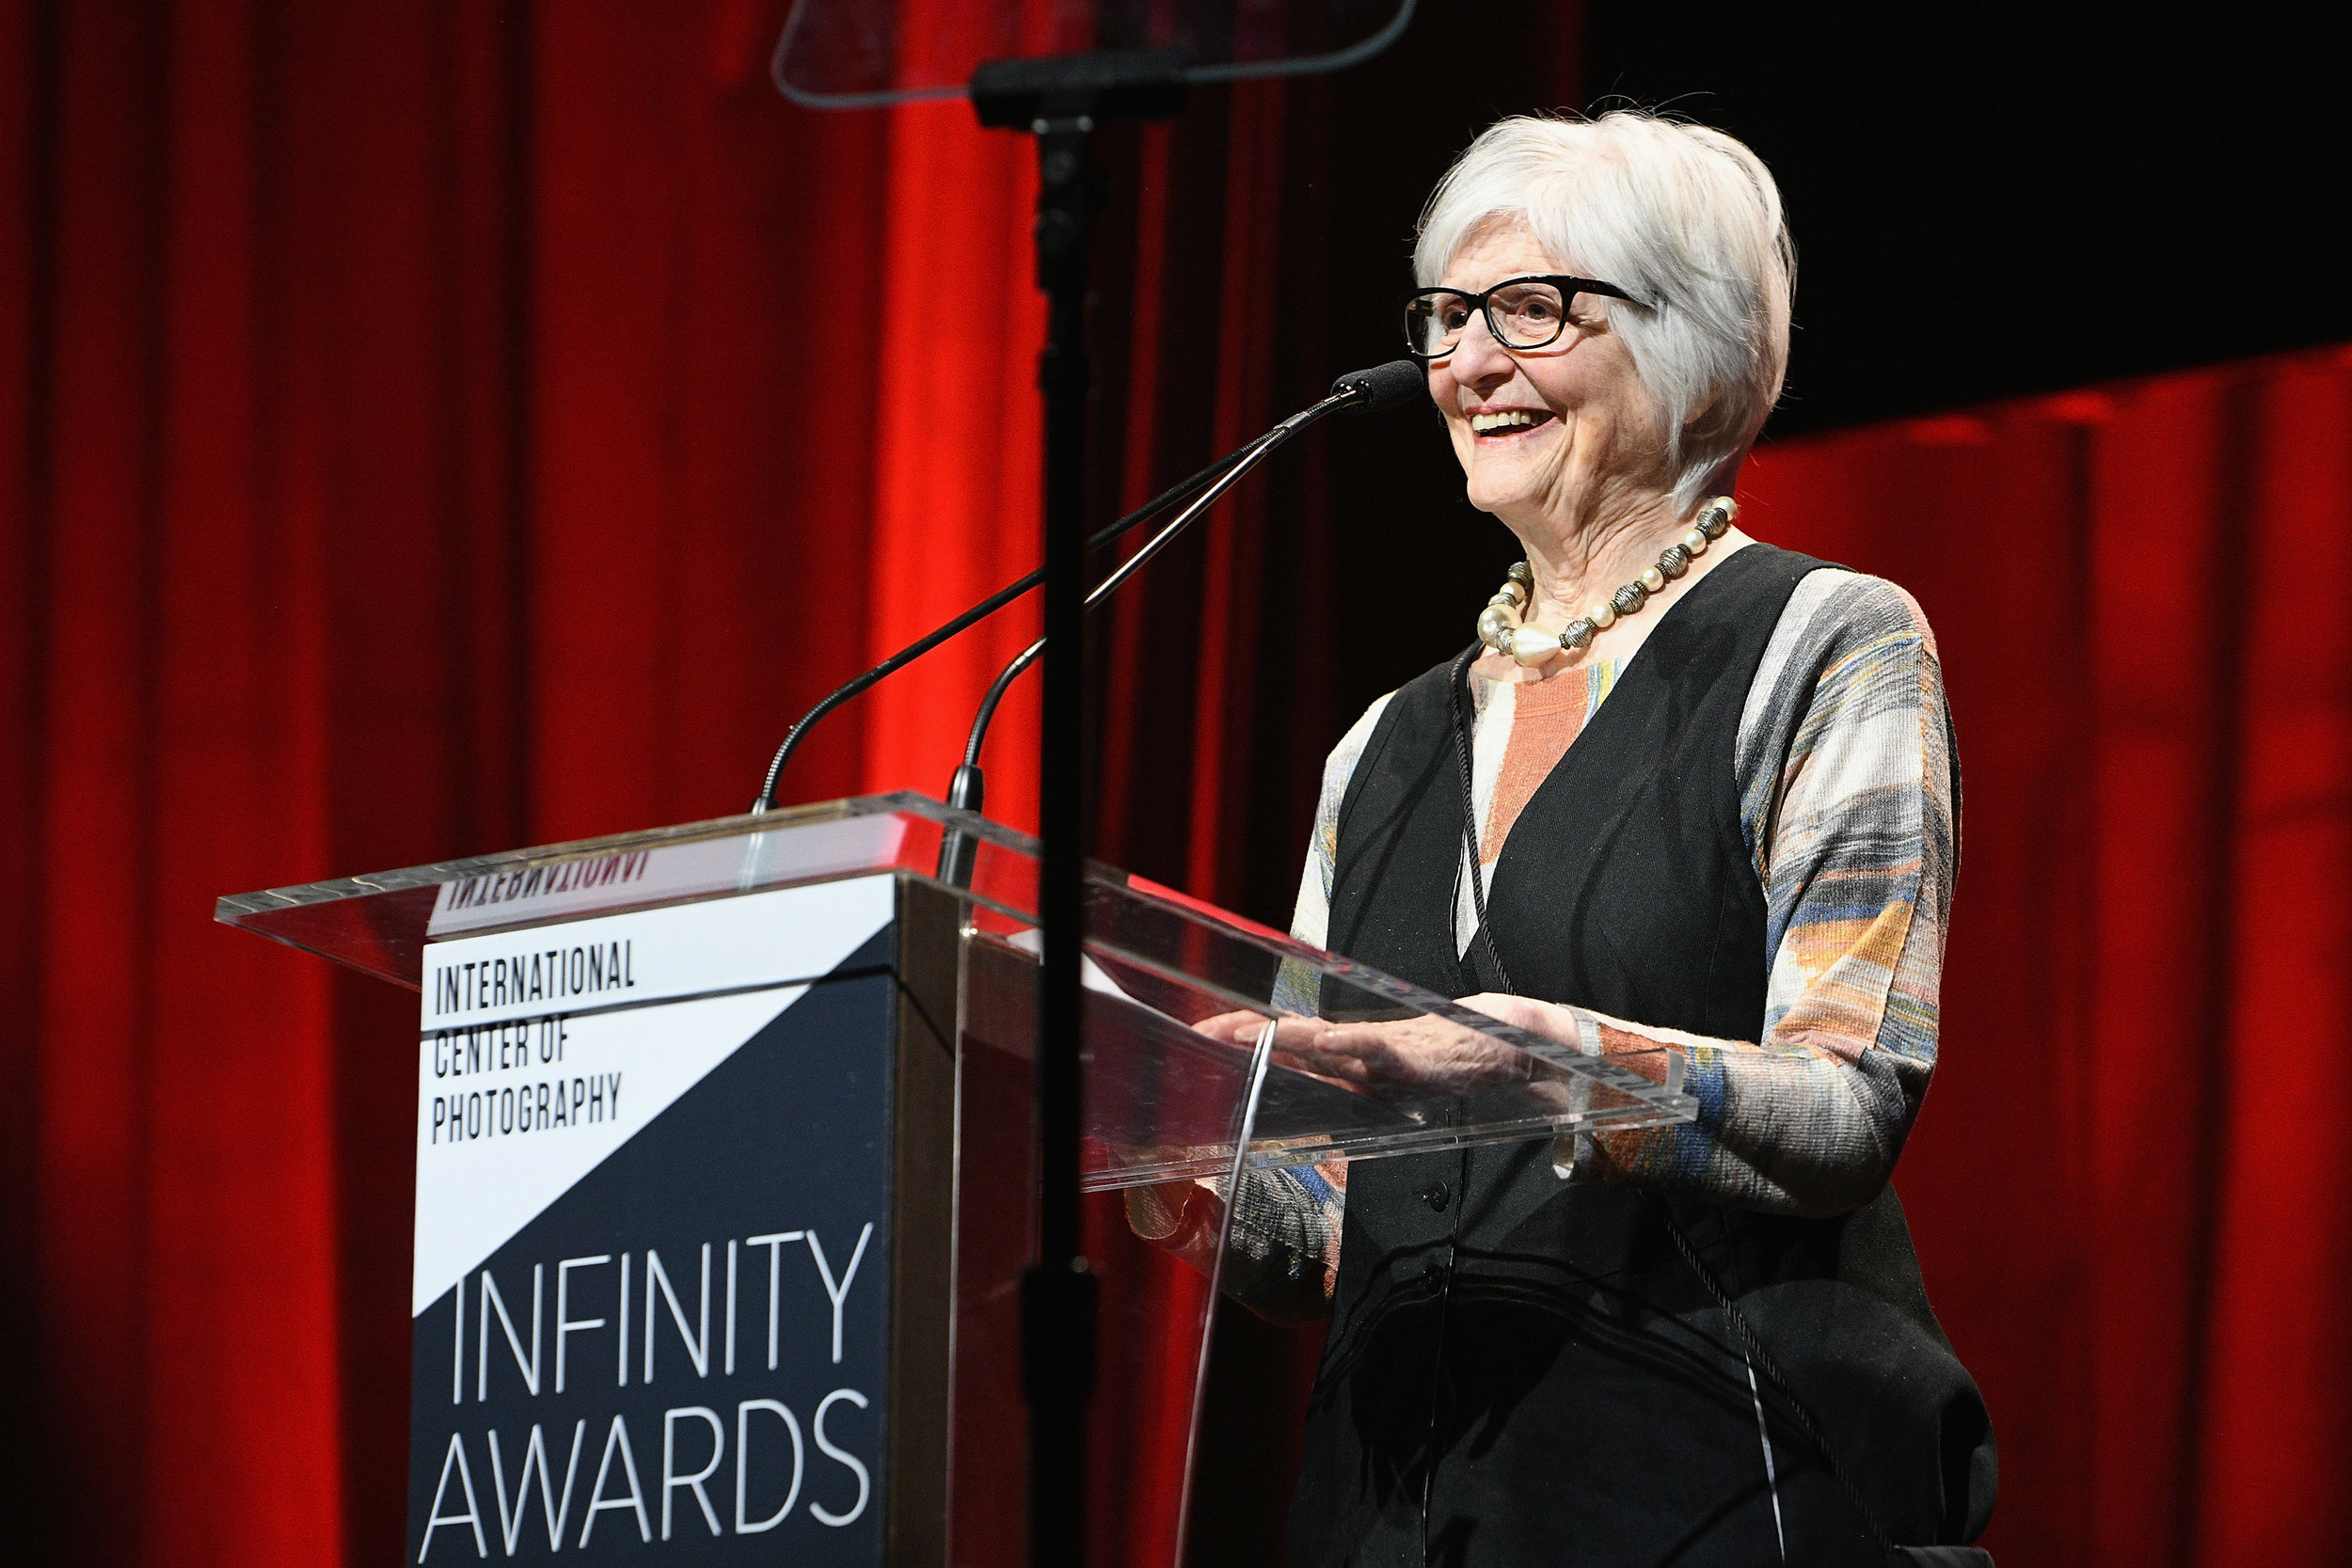 NEW YORK, NY - APRIL 02: Honoree and photographer Rosalind Fox Solomon speaks onstage during The International Center Of Photography's 35th Annual Infinity Awards at The Ziegfeld Ballroom on April 2, 2019 in New York City. (Photo by Bryan Bedder/Getty Images for International Center of Photography)